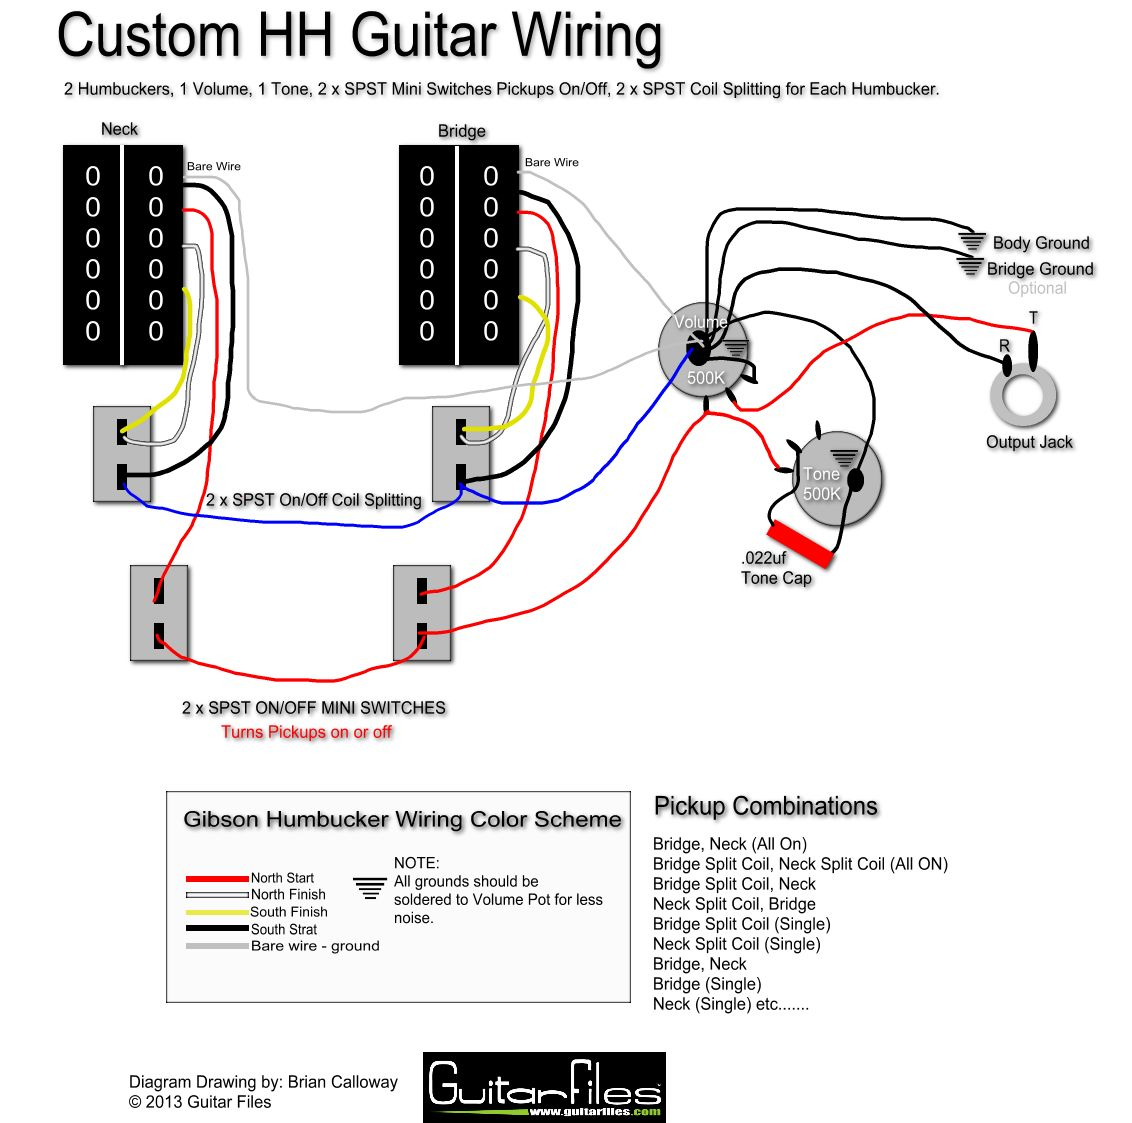 afe4f8370c0d308d426df63ec12f015c custom hh wiring diagram with spst coil splitting and spst coil tap switch wiring diagram at soozxer.org